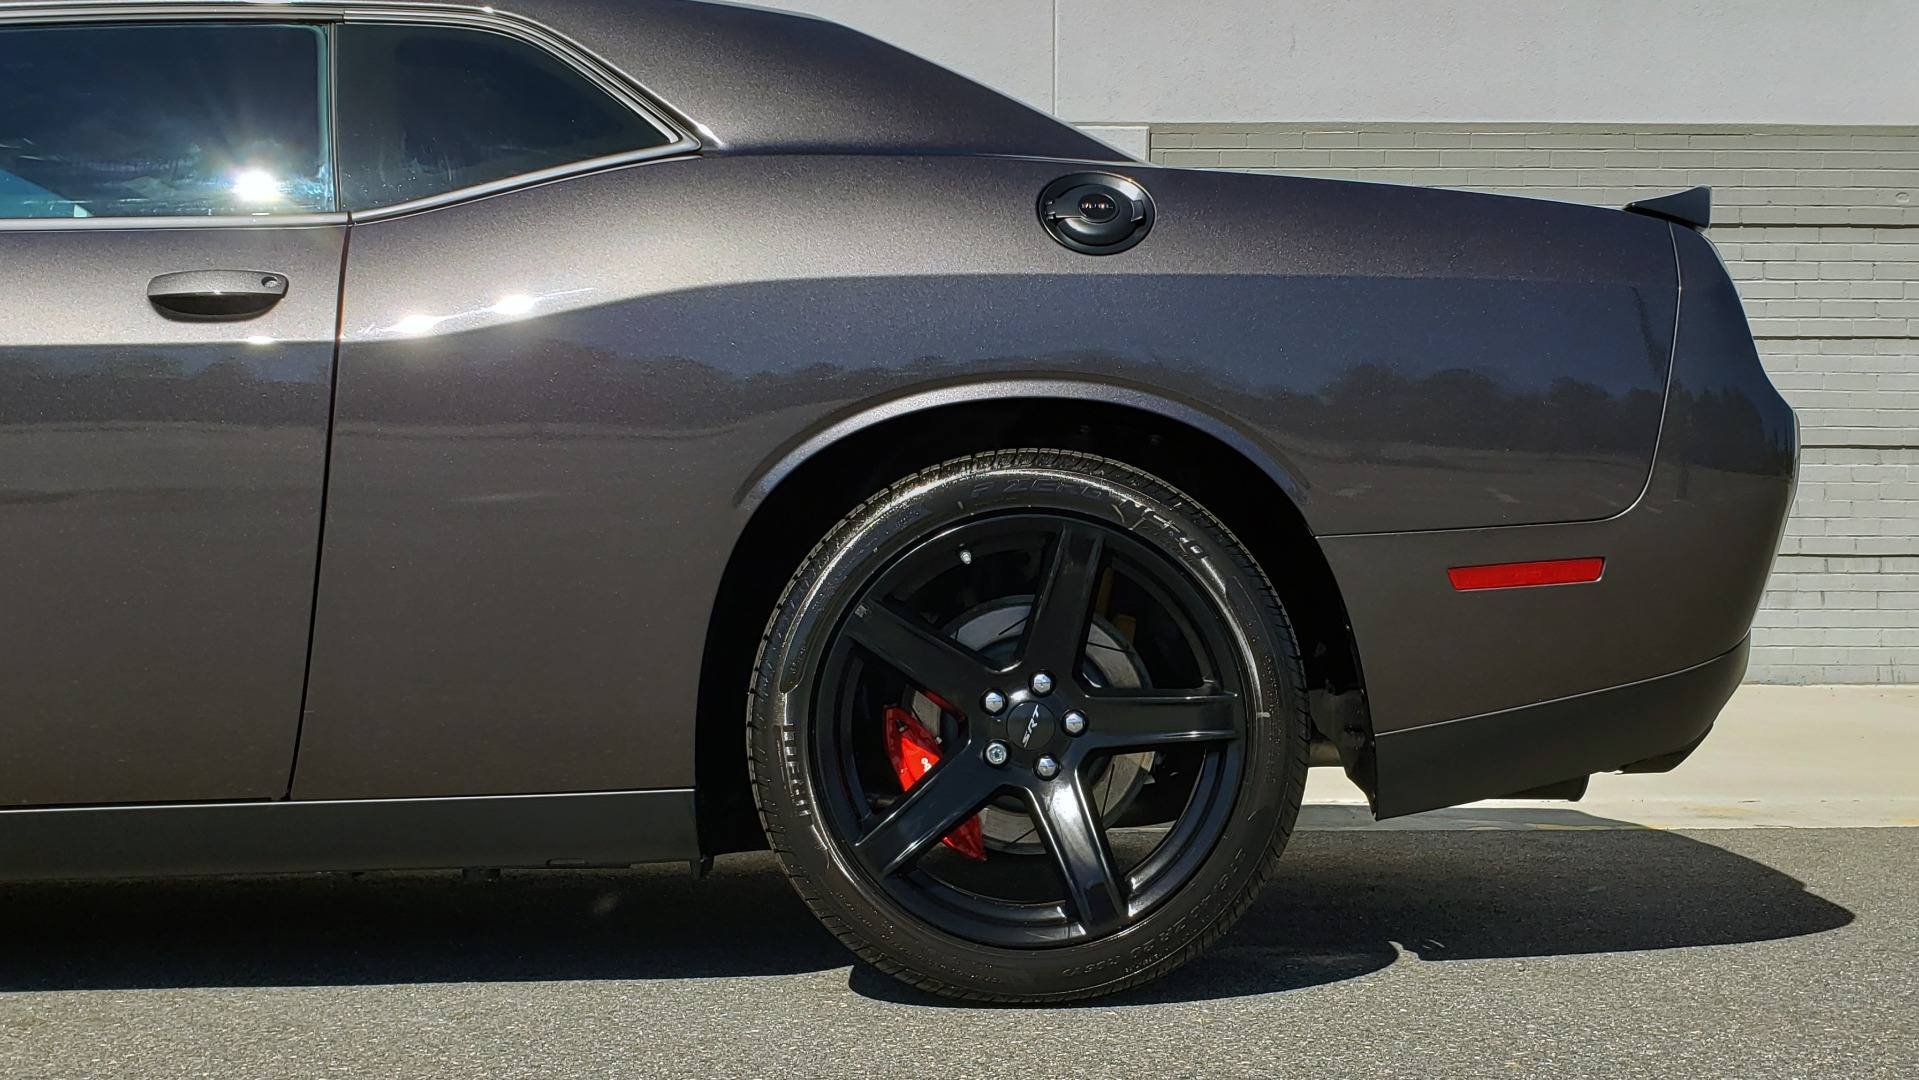 Used 2020 Dodge CHALLENGER SRT HELLCAT (717HP) / NAV / AUTO / CLOTH / REARVIEW / LOW MILES for sale Sold at Formula Imports in Charlotte NC 28227 78